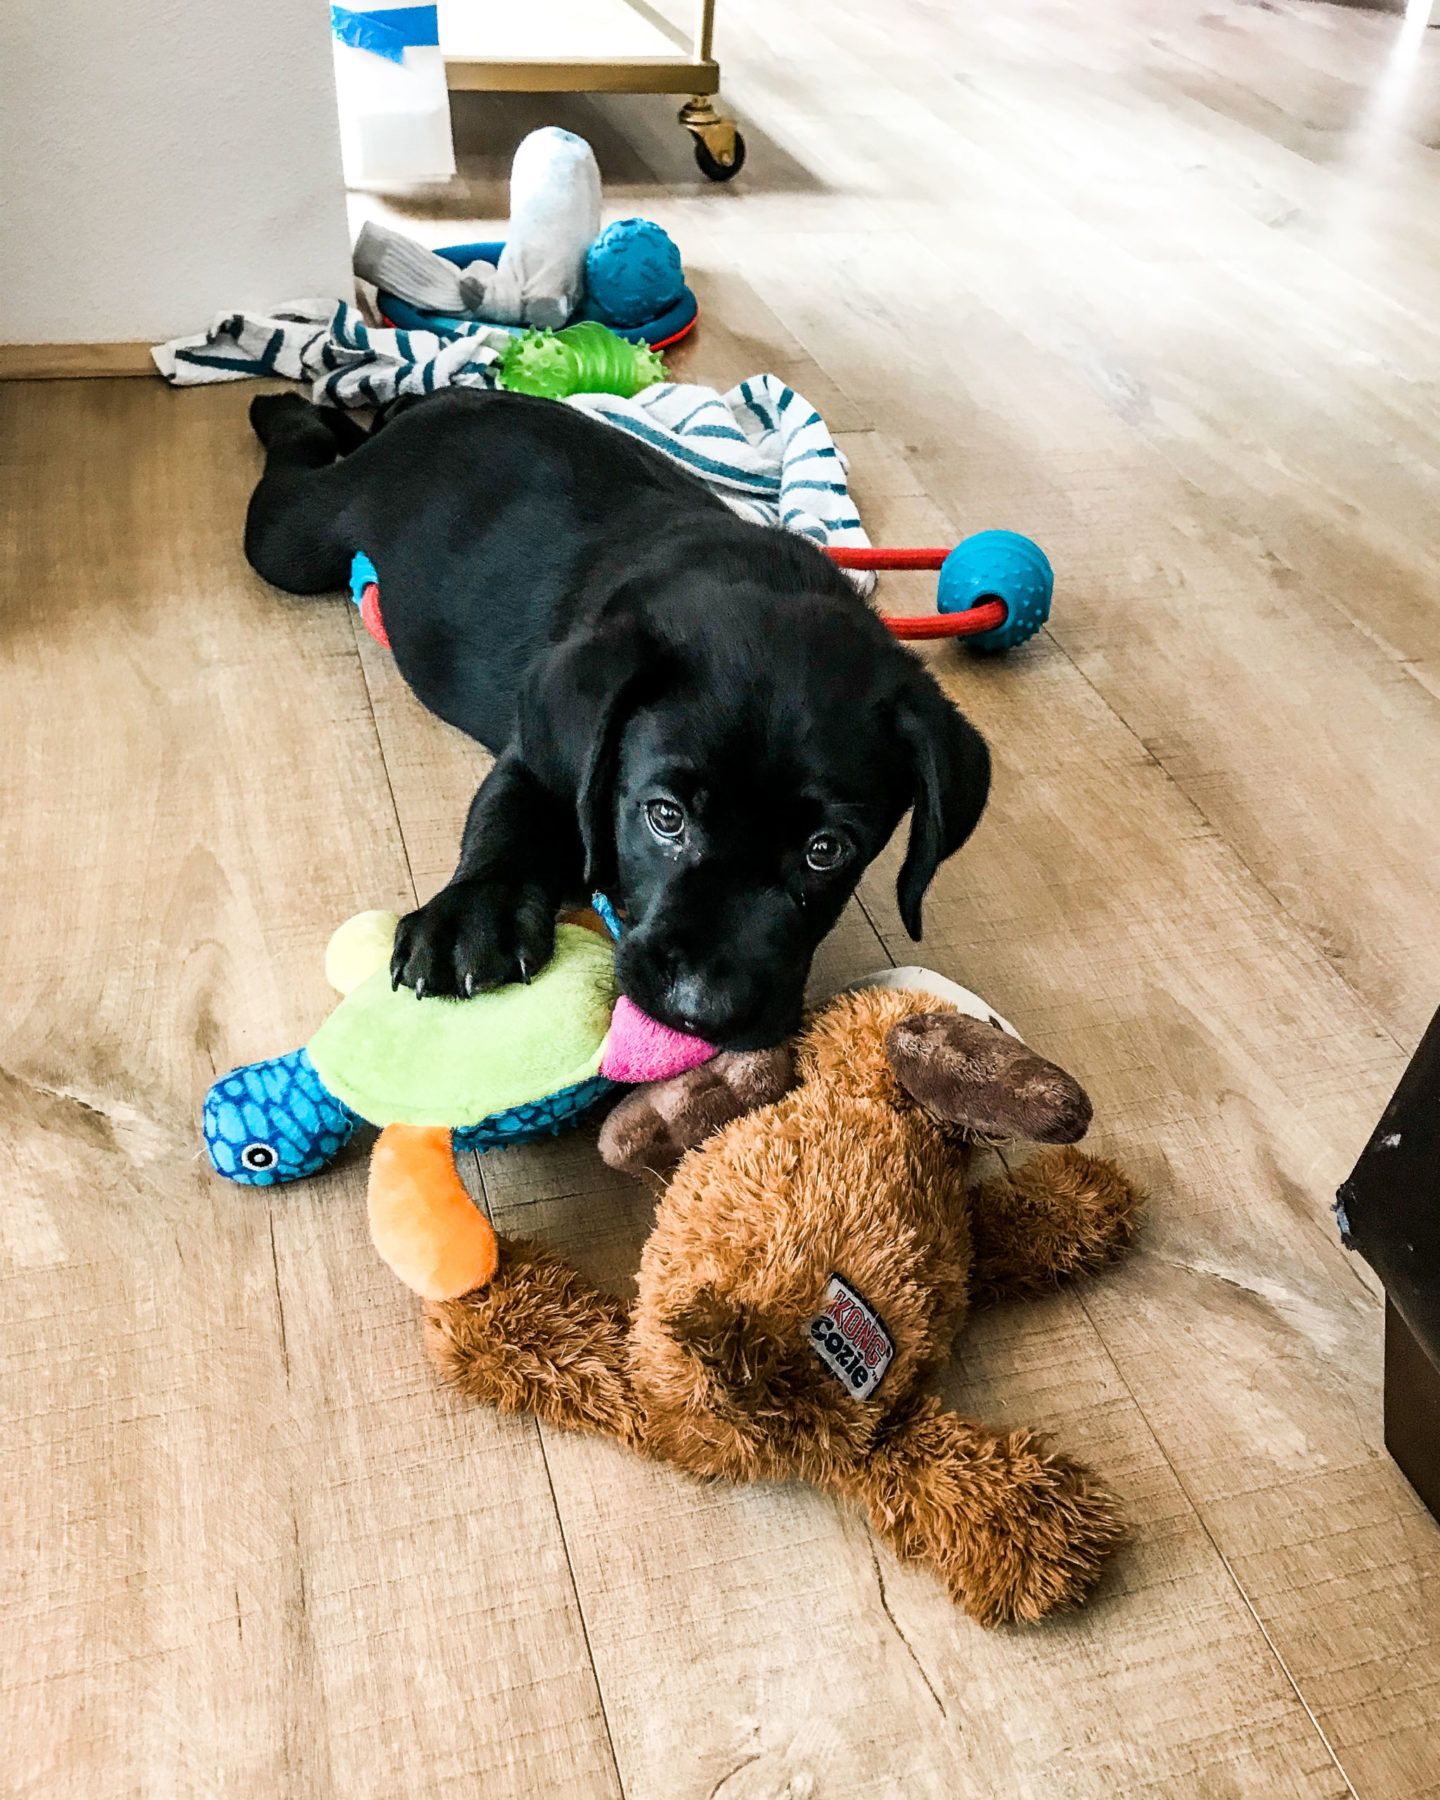 Puppy Toys Buying Guide The Best Labrador Puppy Supplies Puppytoys Dogtoys Labradorretriever Labradorpuppy Pup Puppy Supplies Labrador Puppy Toy Puppies